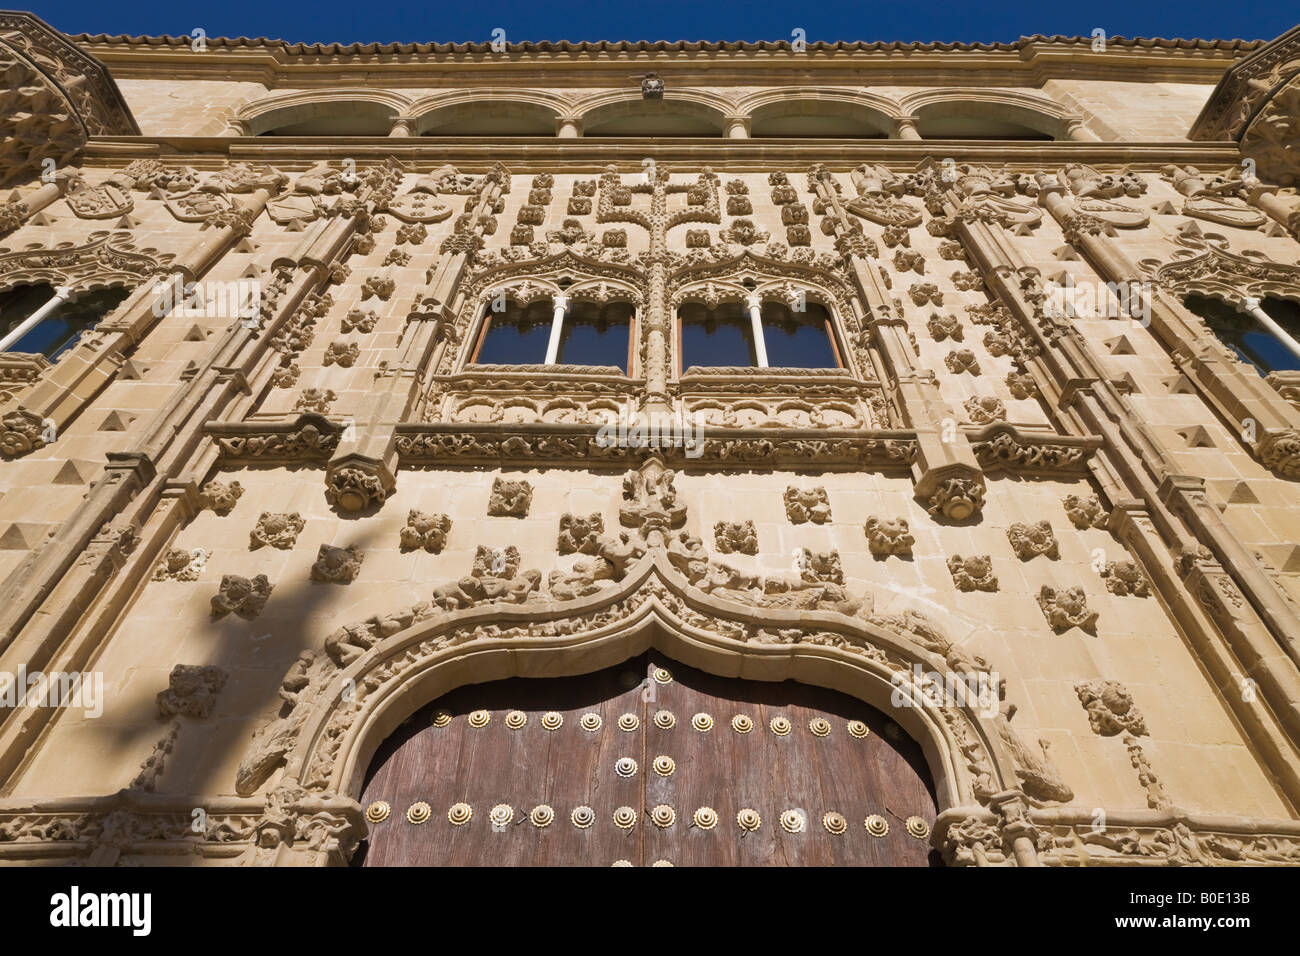 Baeza Jaen Province Spain Facade of Universidad Internacional de Andalucia Antonio Machado in the Palacio de Jabalquinto - Stock Image